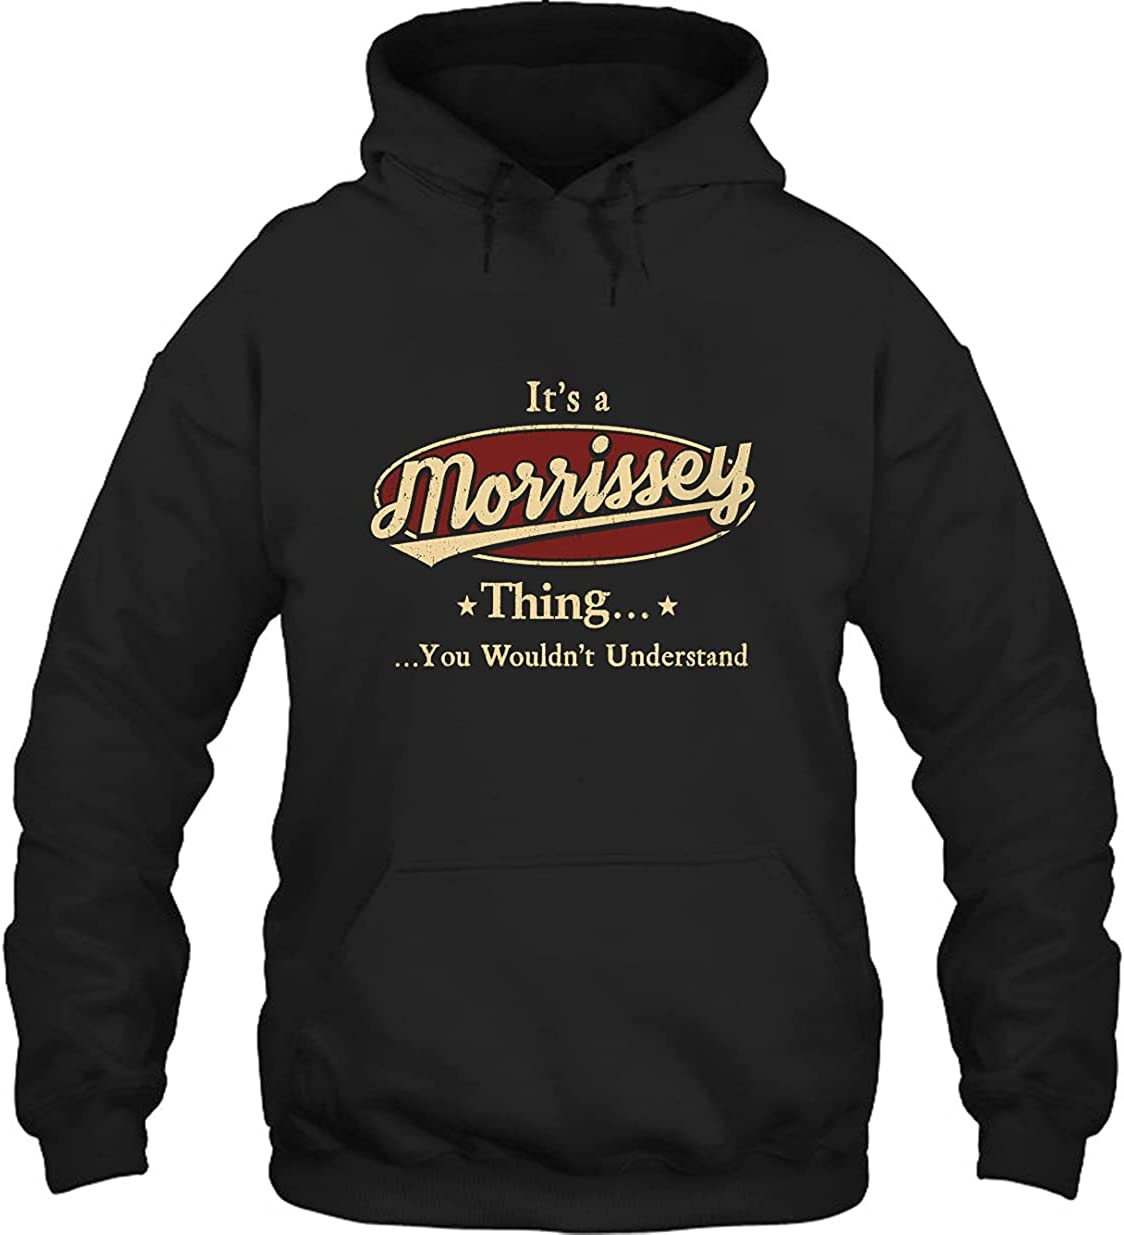 It's a Morrissey At Washington Mall the price Thing Wouldn't Understand You Shirt